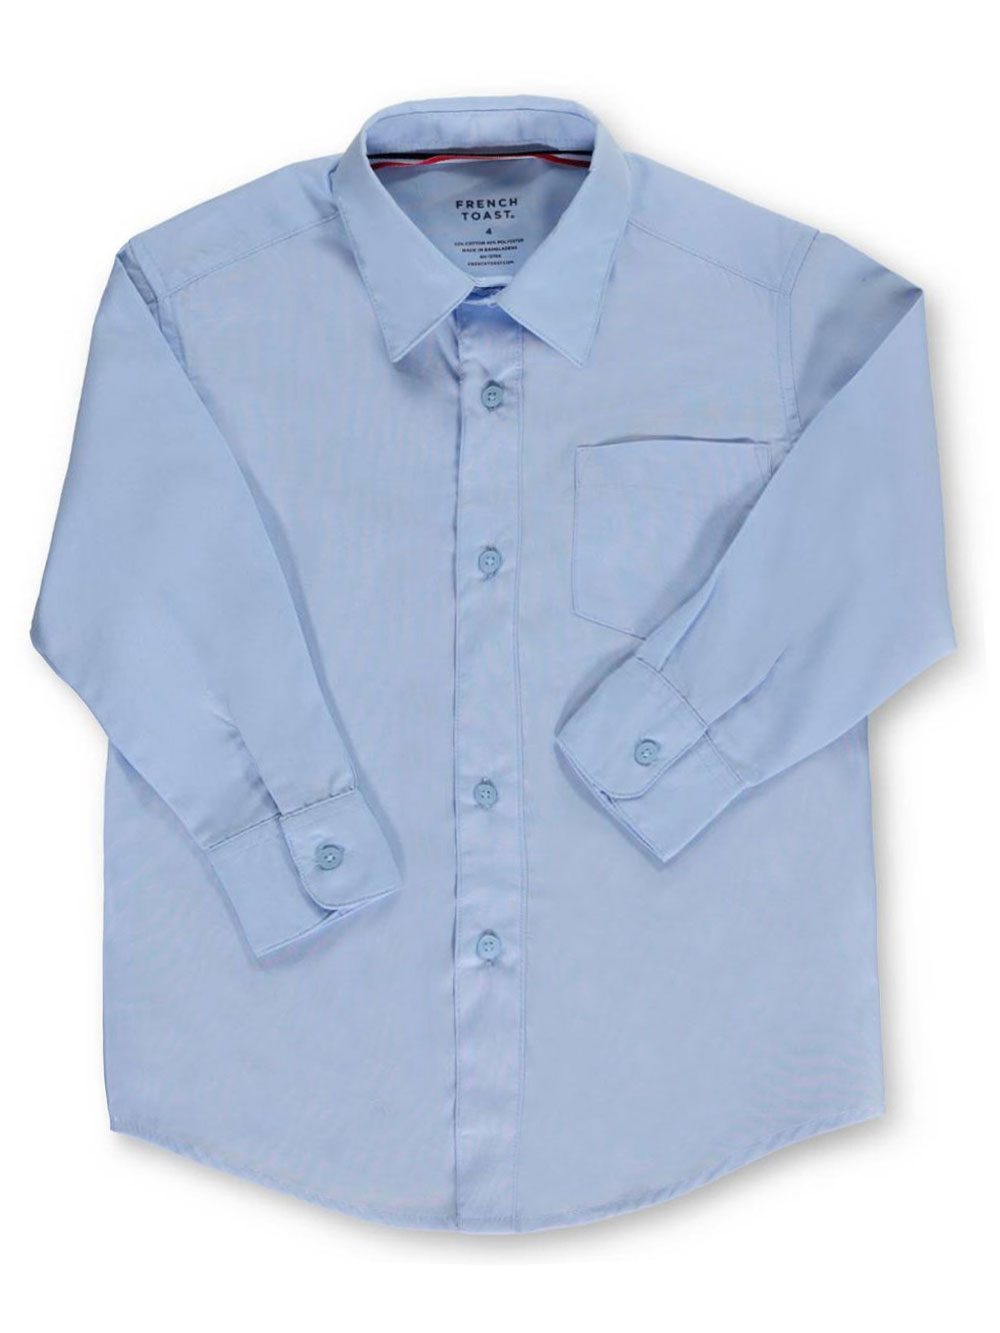 Image of French Toast School Uniform Little Boys LS ButtonDown Shirt Sizes 4  7  blue 6